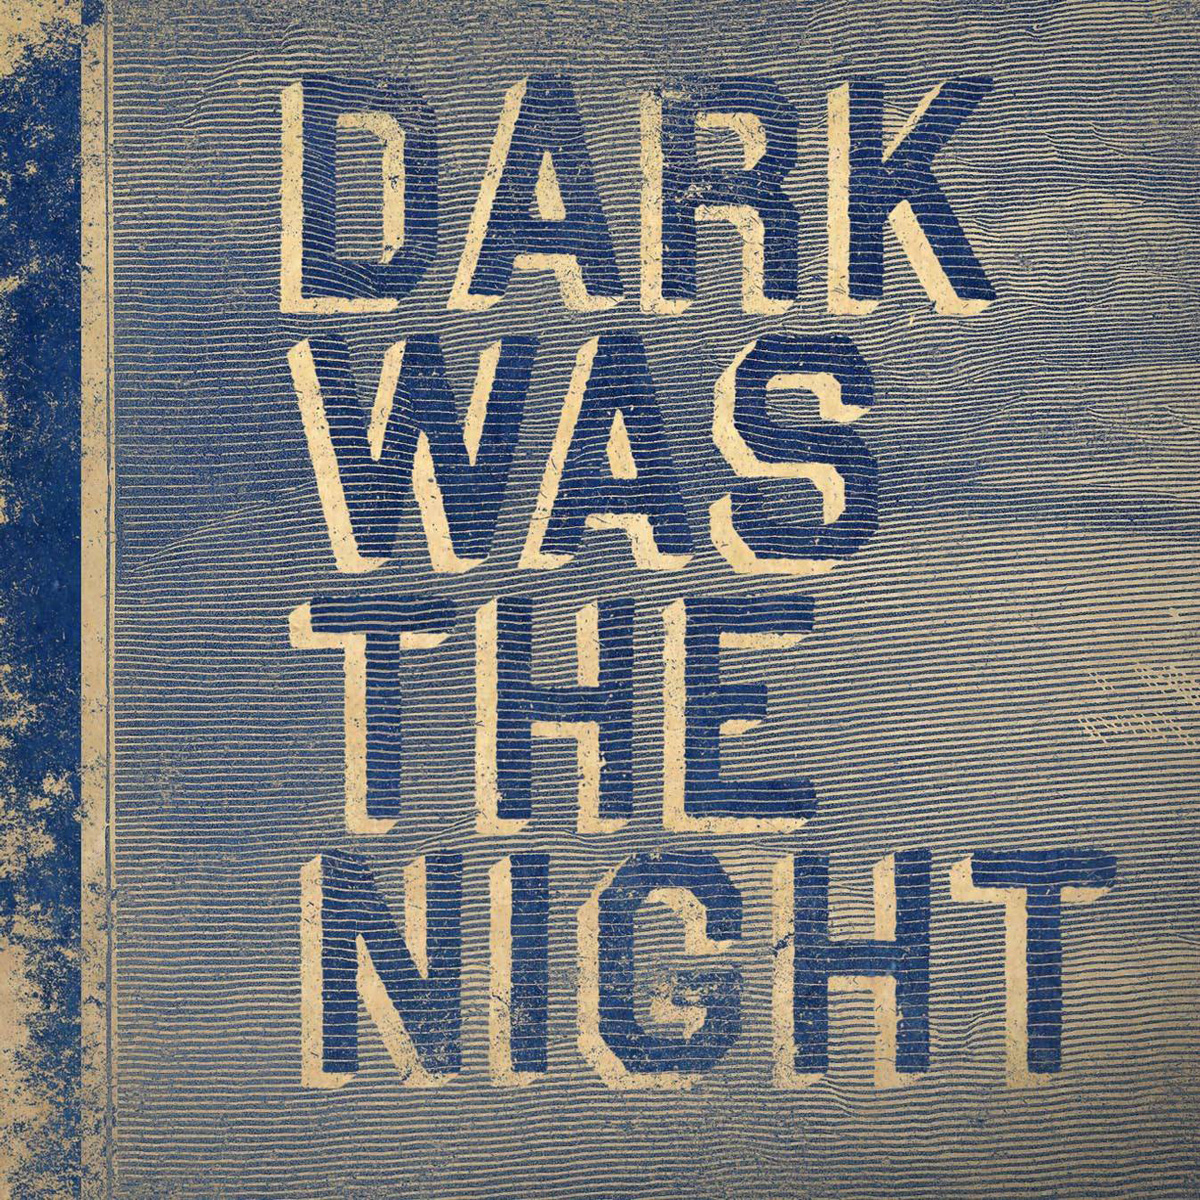 02_darkwasthenight